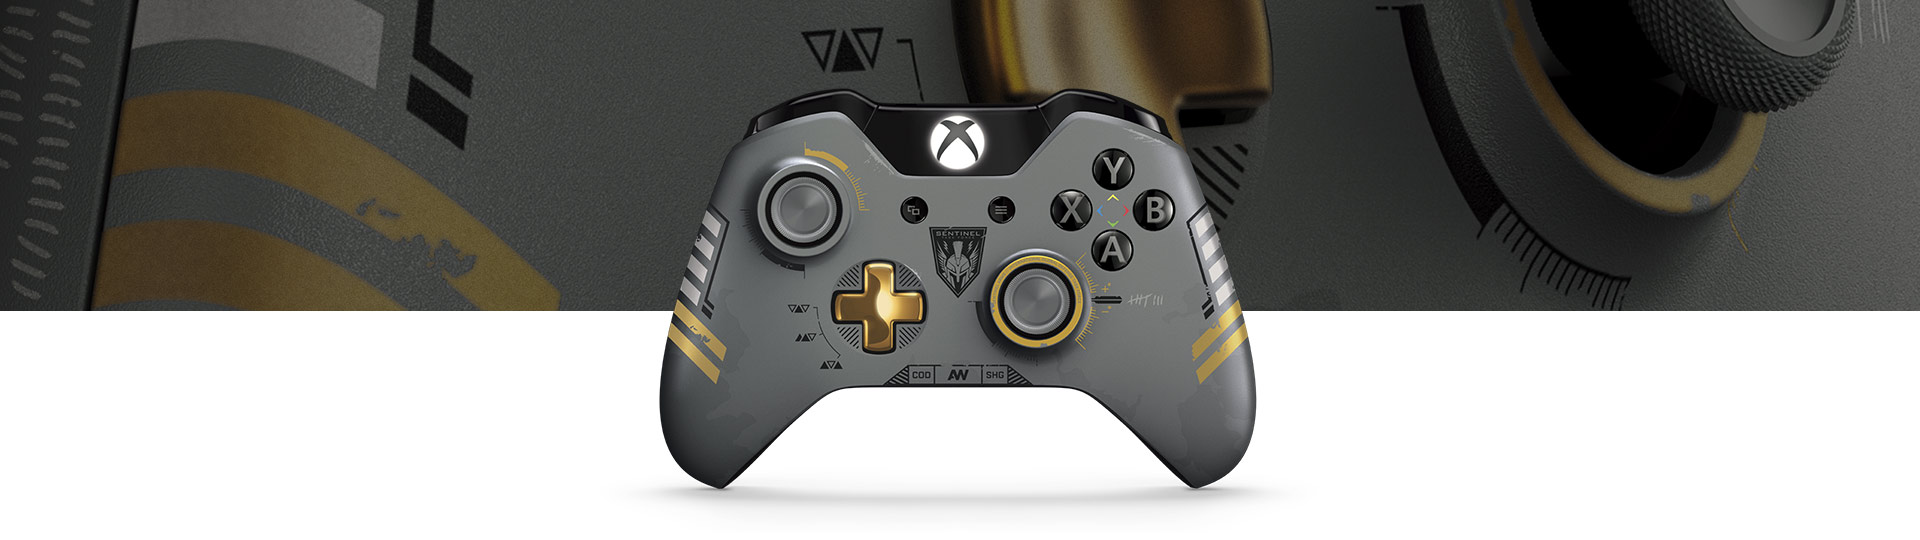 Call of Duty Advanced Warfare-controller